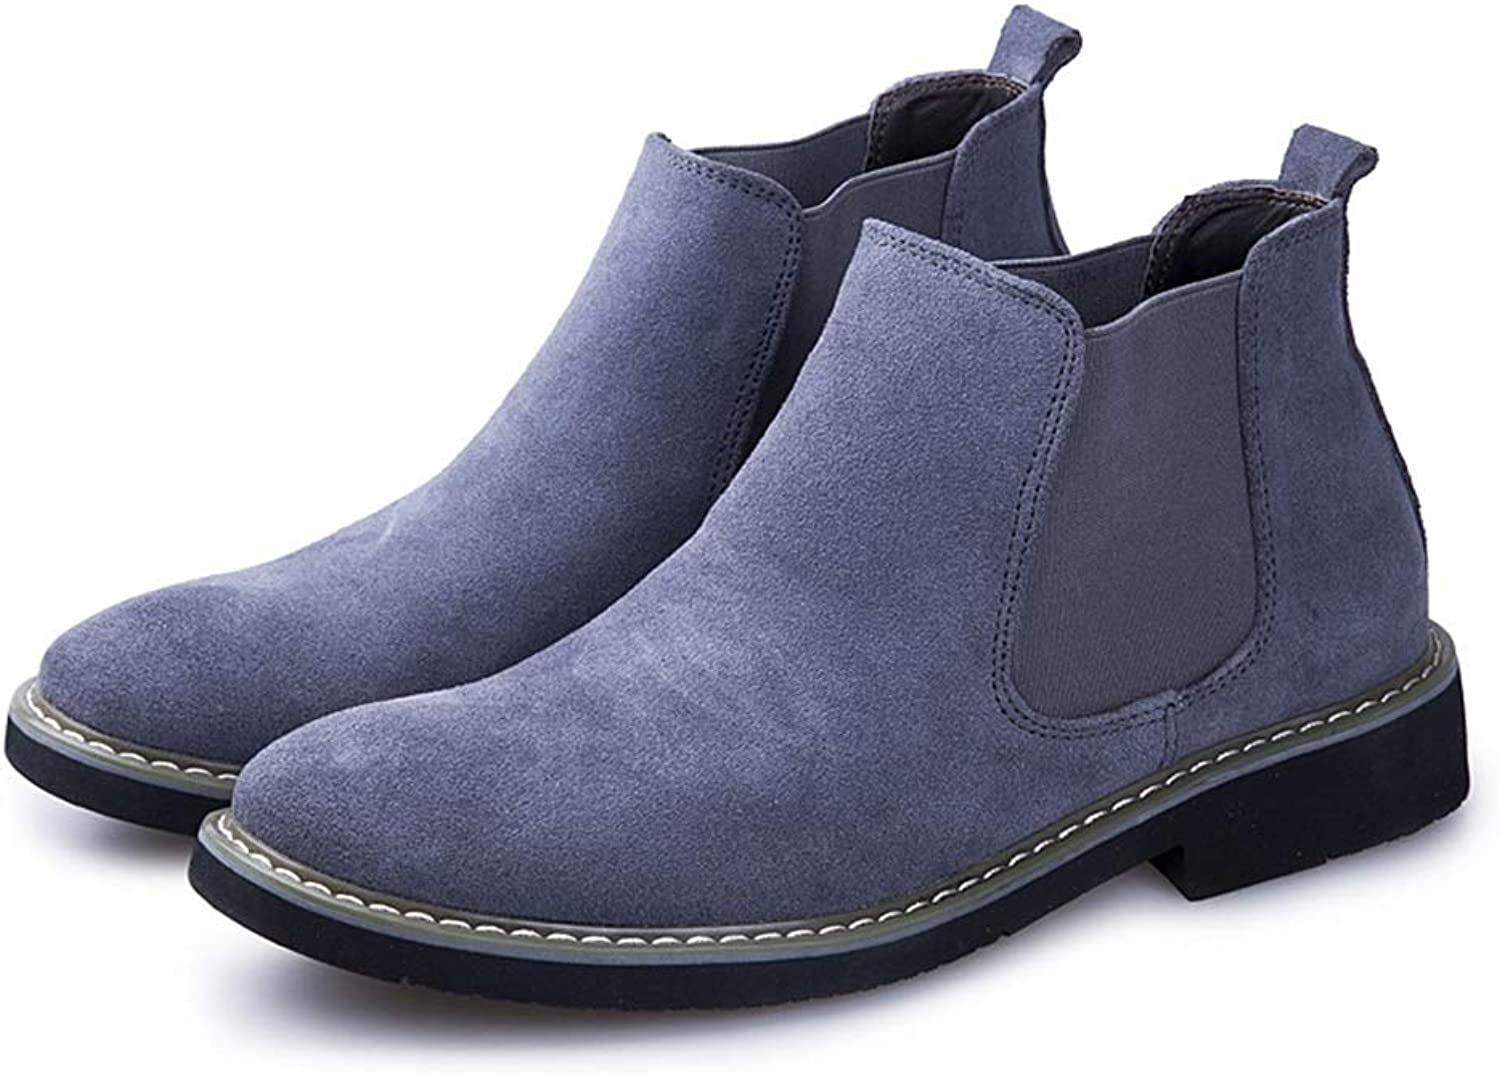 Xujw-shoes Men's Round Toe Sleeve with Flat Suede Pure color Boots